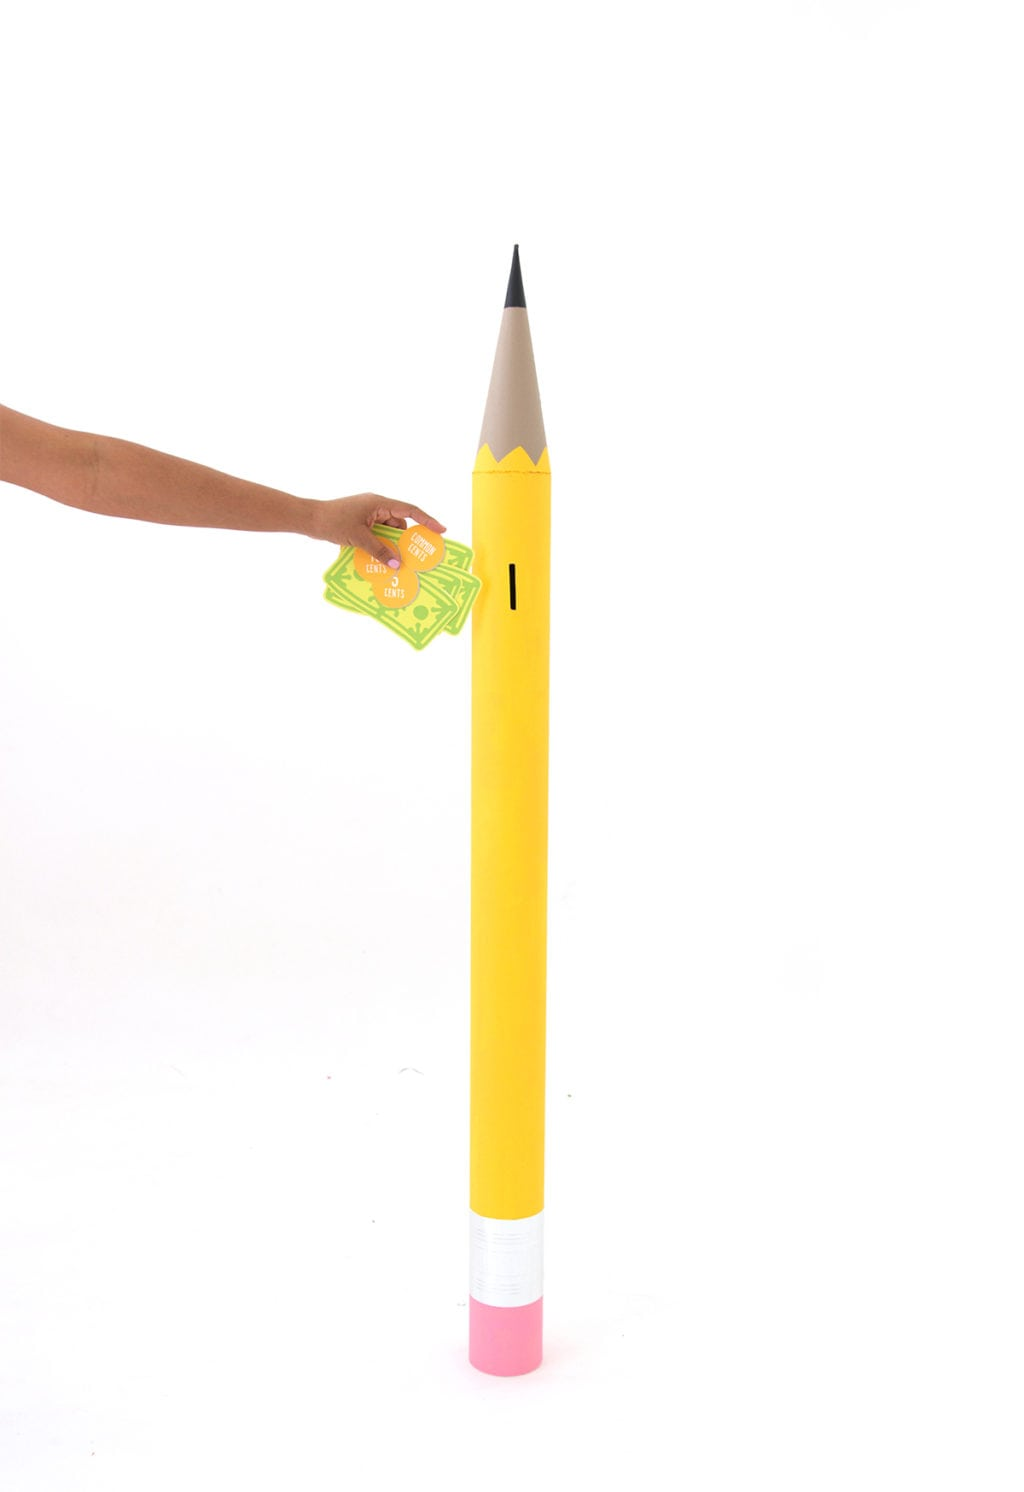 DIY Giant Mail Tube Pencil Piggy Bank